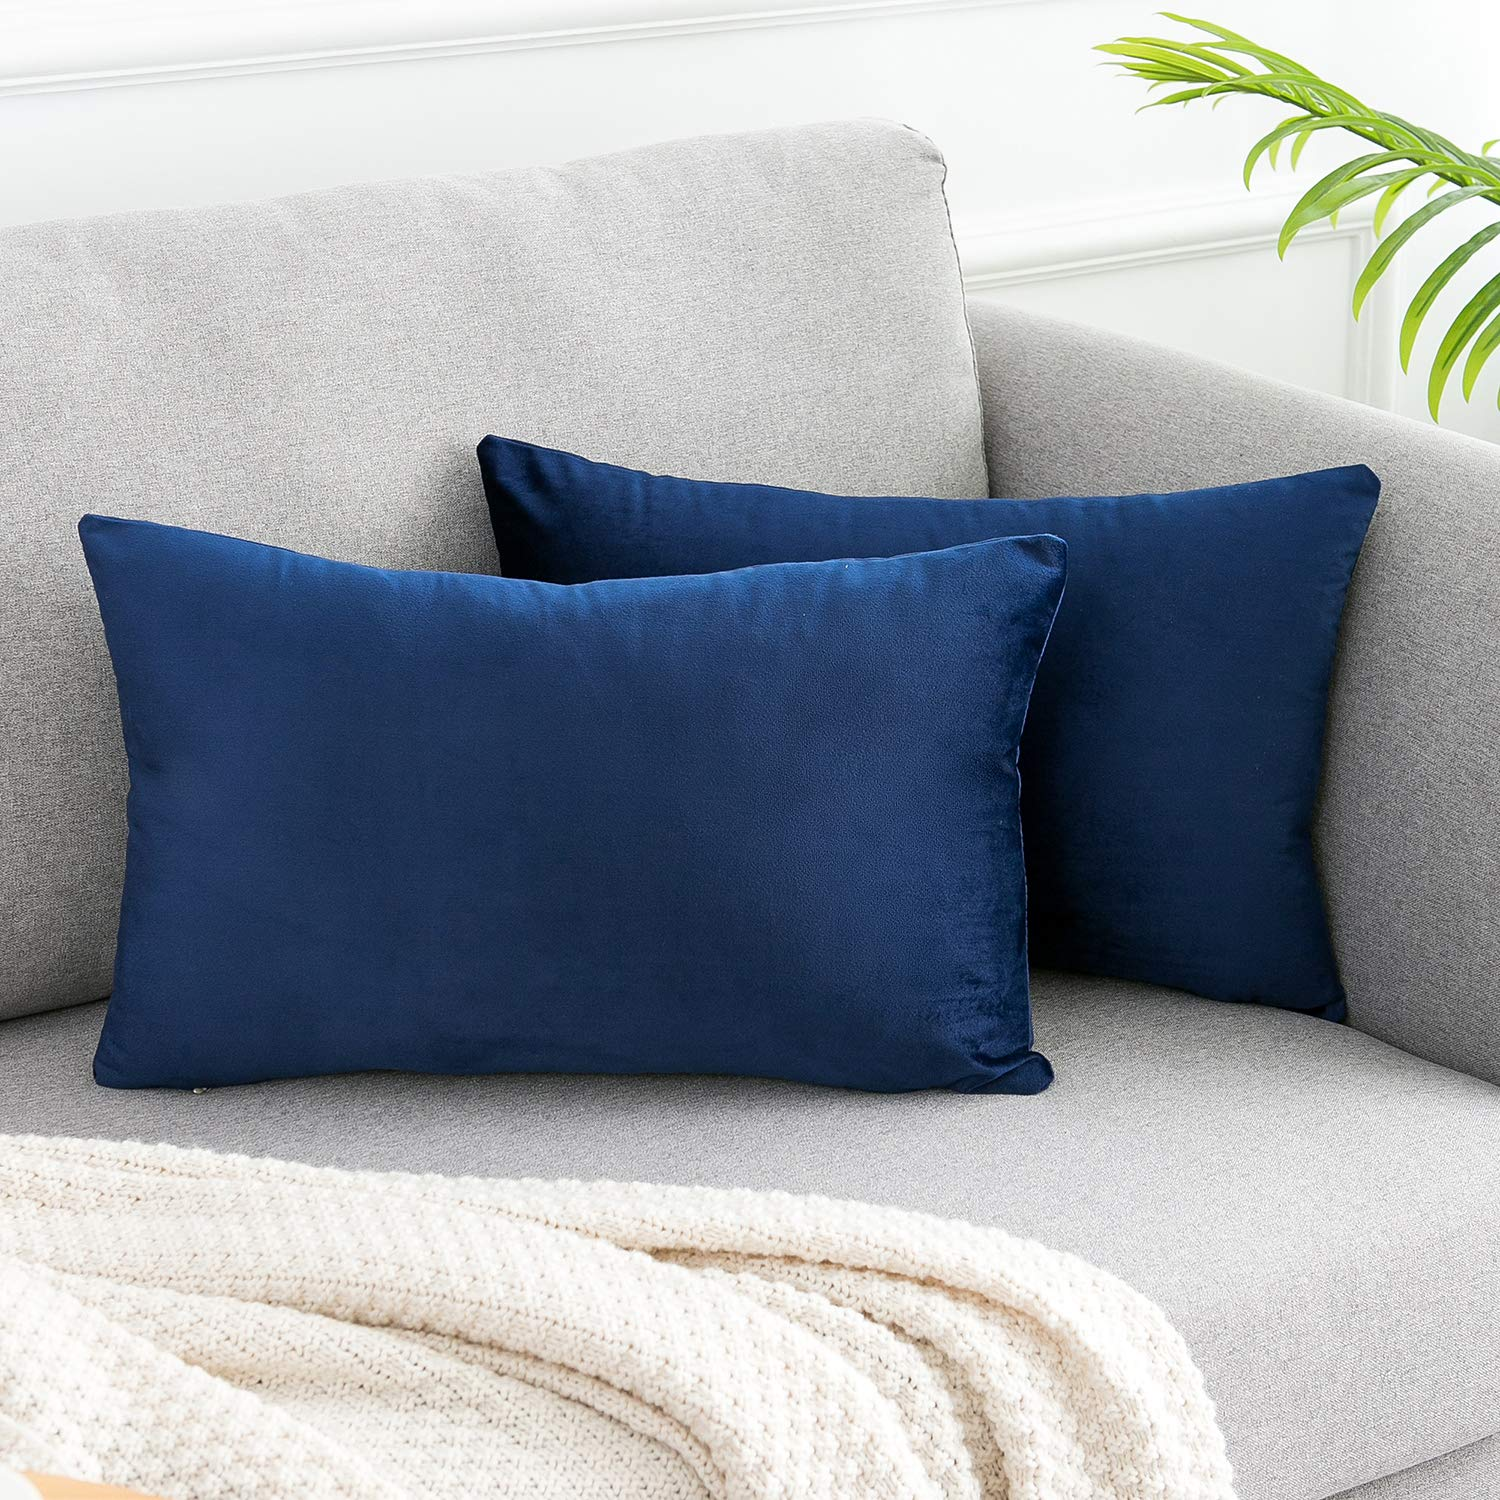 Wlnui Soft Velvet Navy Blue Throw Pillow Covers Set Of 2 Decorative Pillow Case Lumbar Cushion Cover For Sofa Couch Home Buy Online In Botswana At Botswana Desertcart Com Productid 106680761